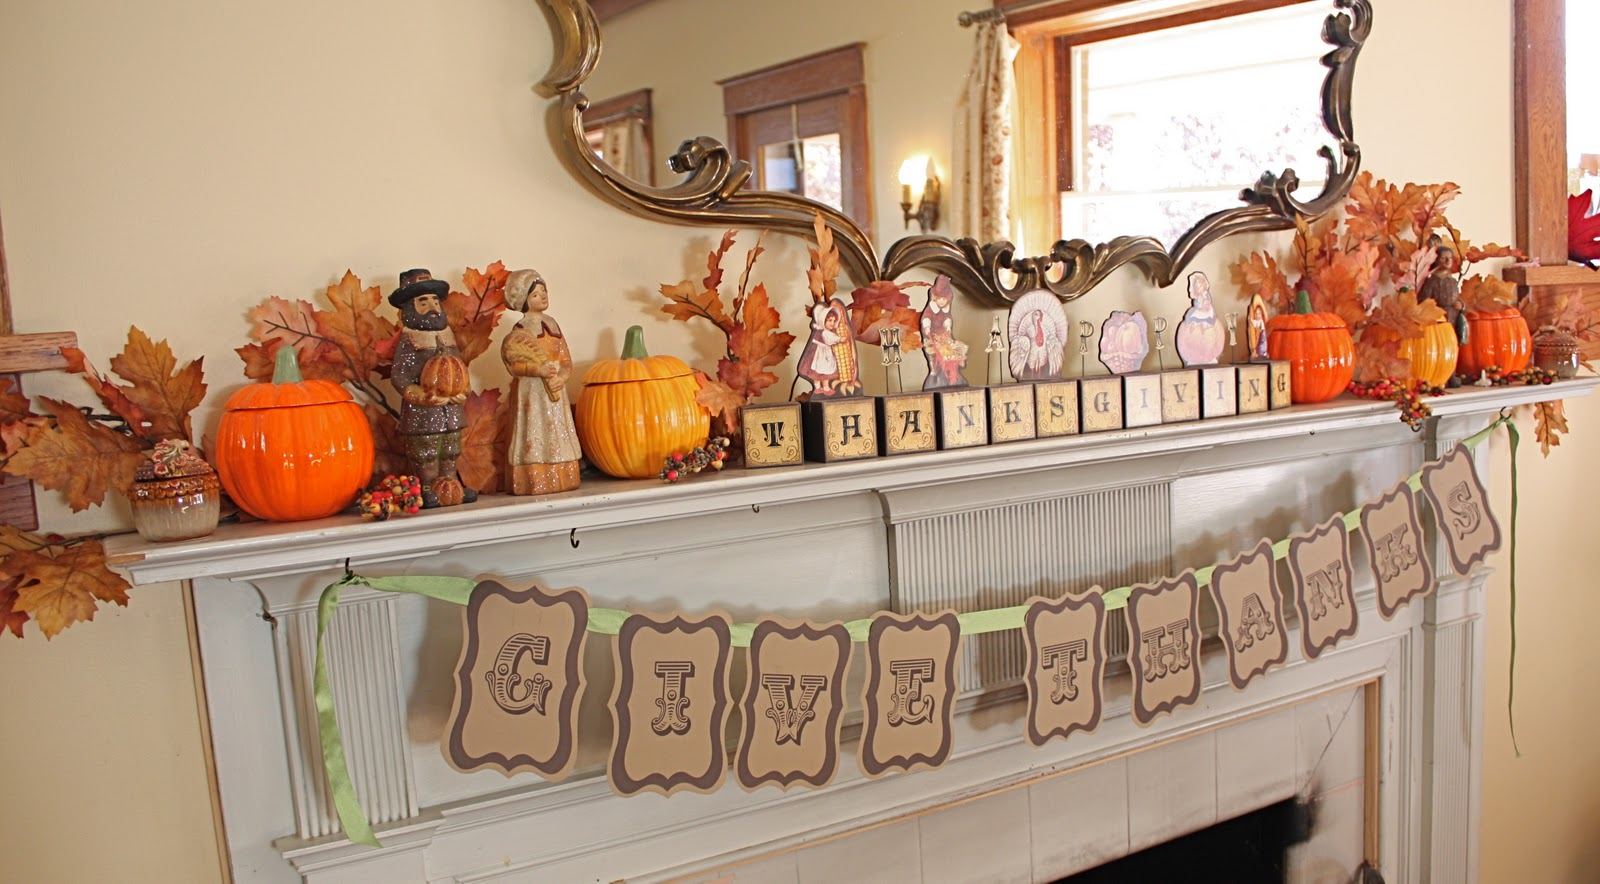 At second street thanksgiving mantel and other decor for Thanksgiving home decorations